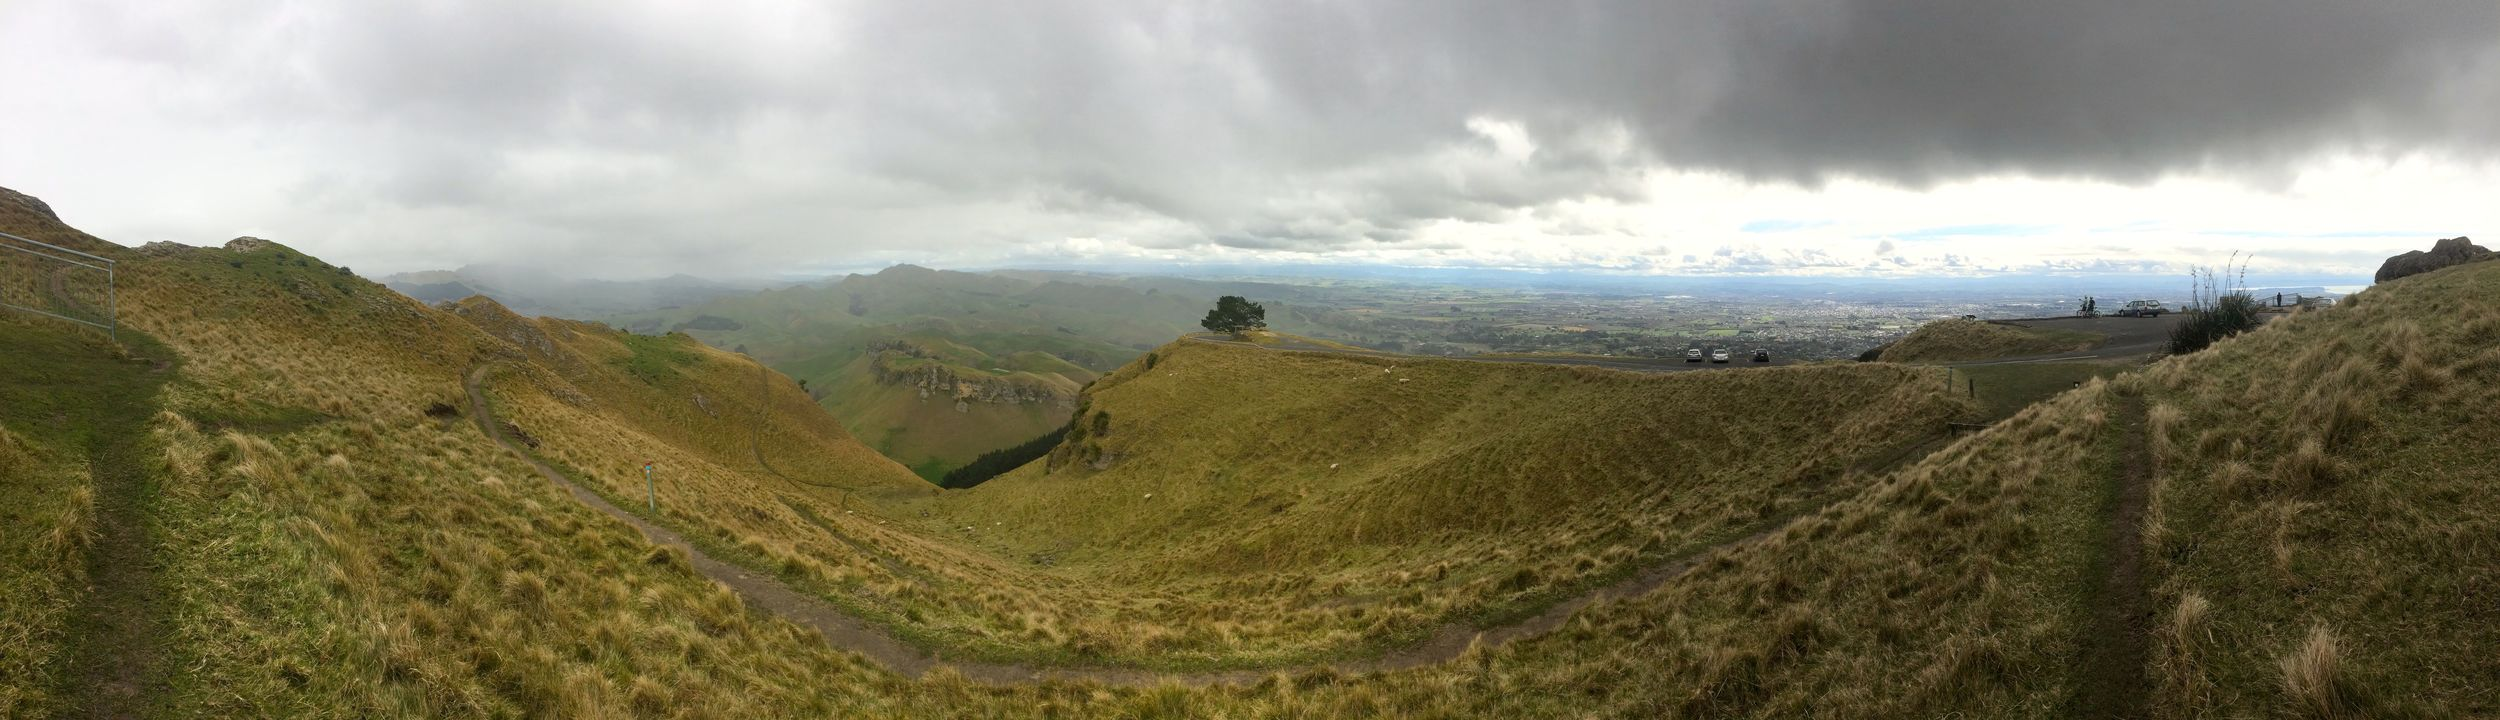 This is at the top of Te Mata peak in Hawkes Bay. The drop offs were sheer. In New Zealand they just let you walk right up to the edge. This is the side which isn't so terrifying. On the other side,  I laid down on my stomach in the sheep shit I was so scared. Andrew strode right up to the edge.